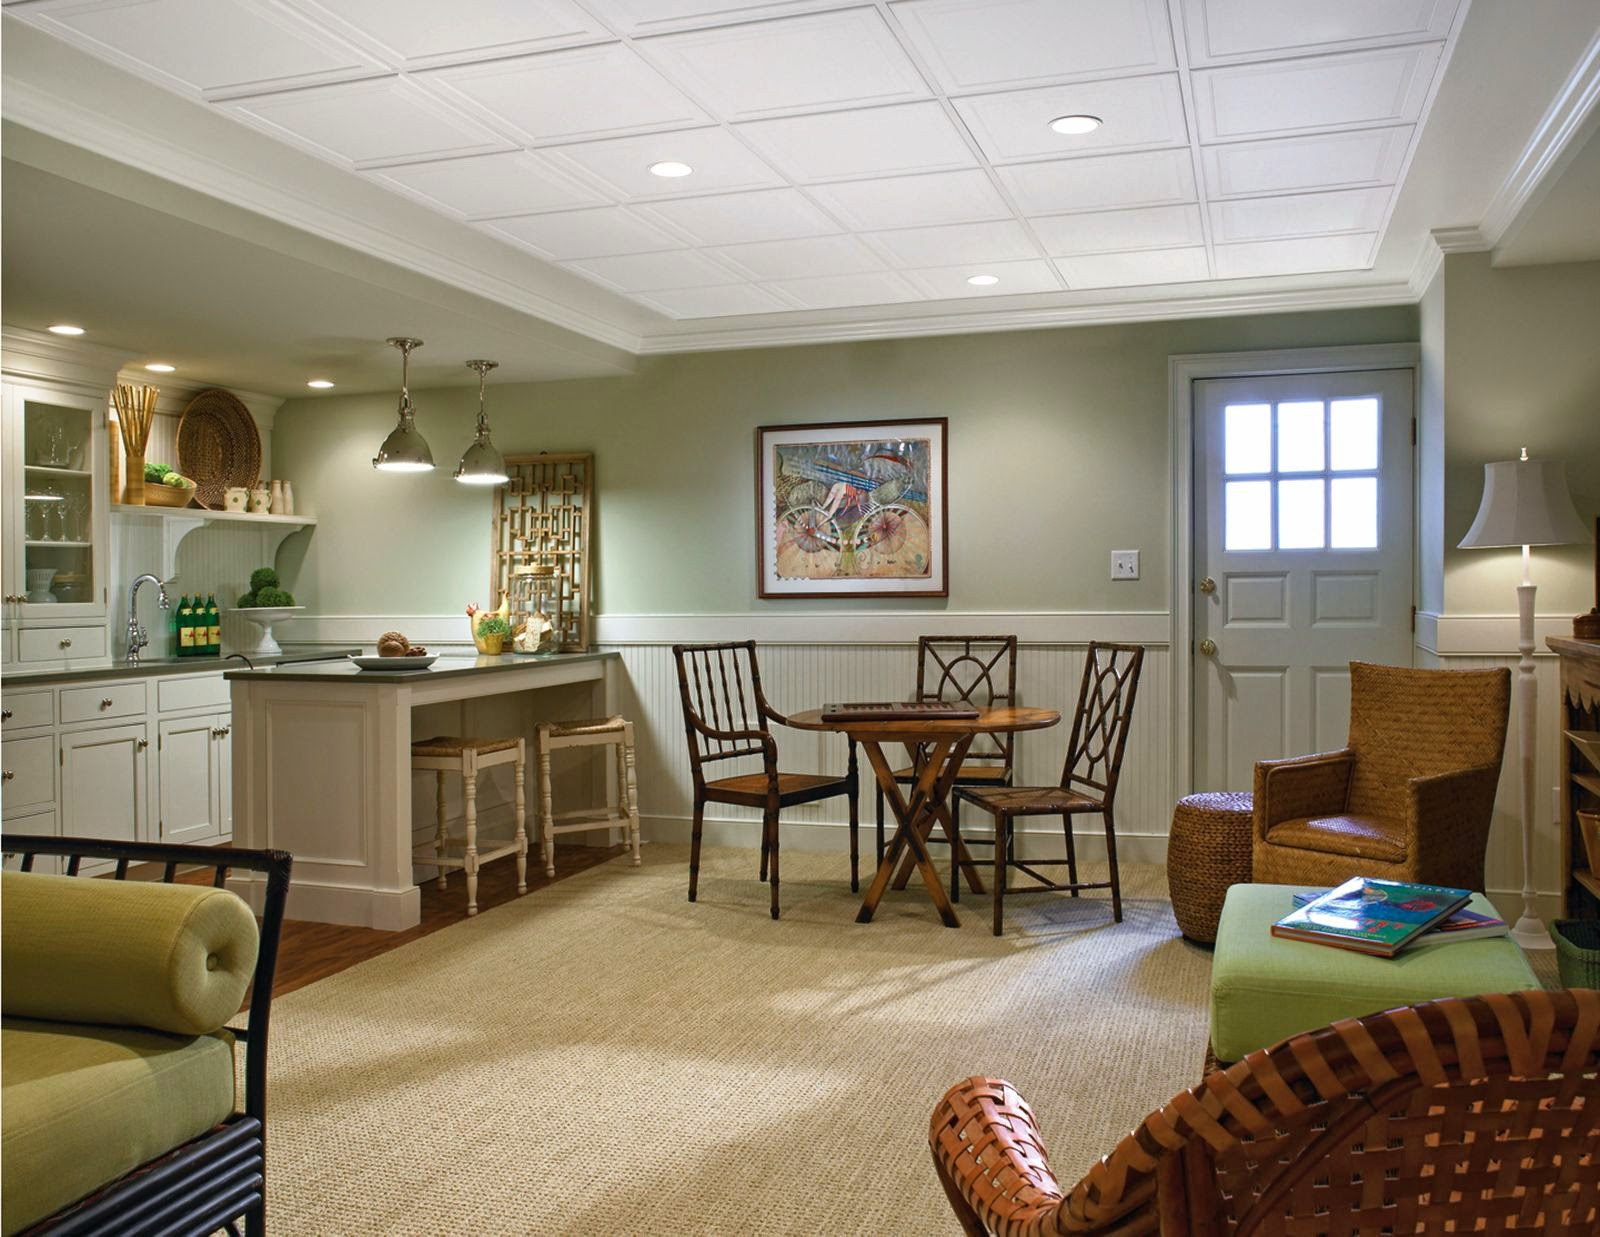 Basement Ceilings {Then and Now} | The Interior Frugalista